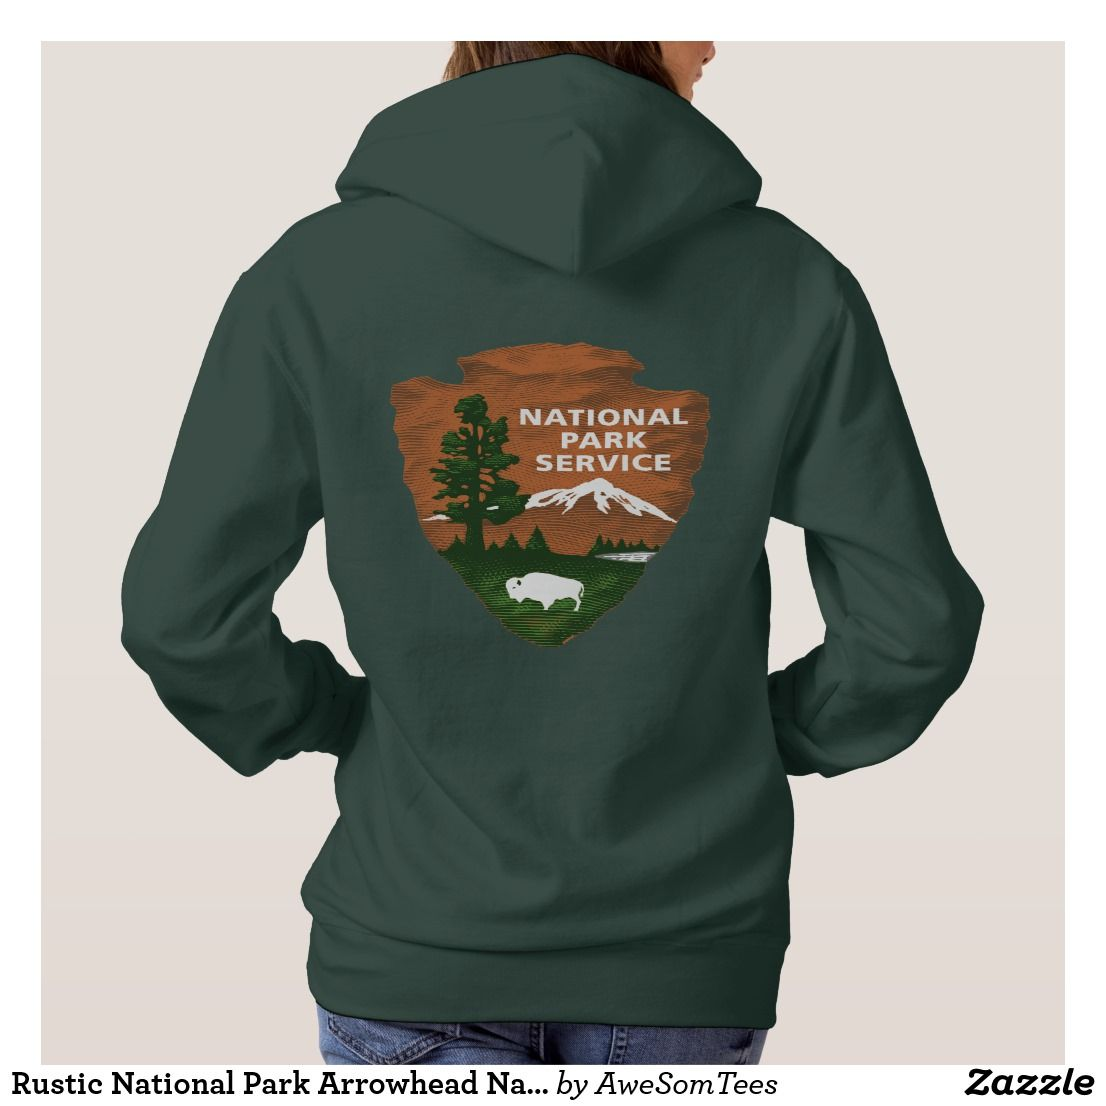 Rustic National Park Arrowhead Nature Hoodie Camping